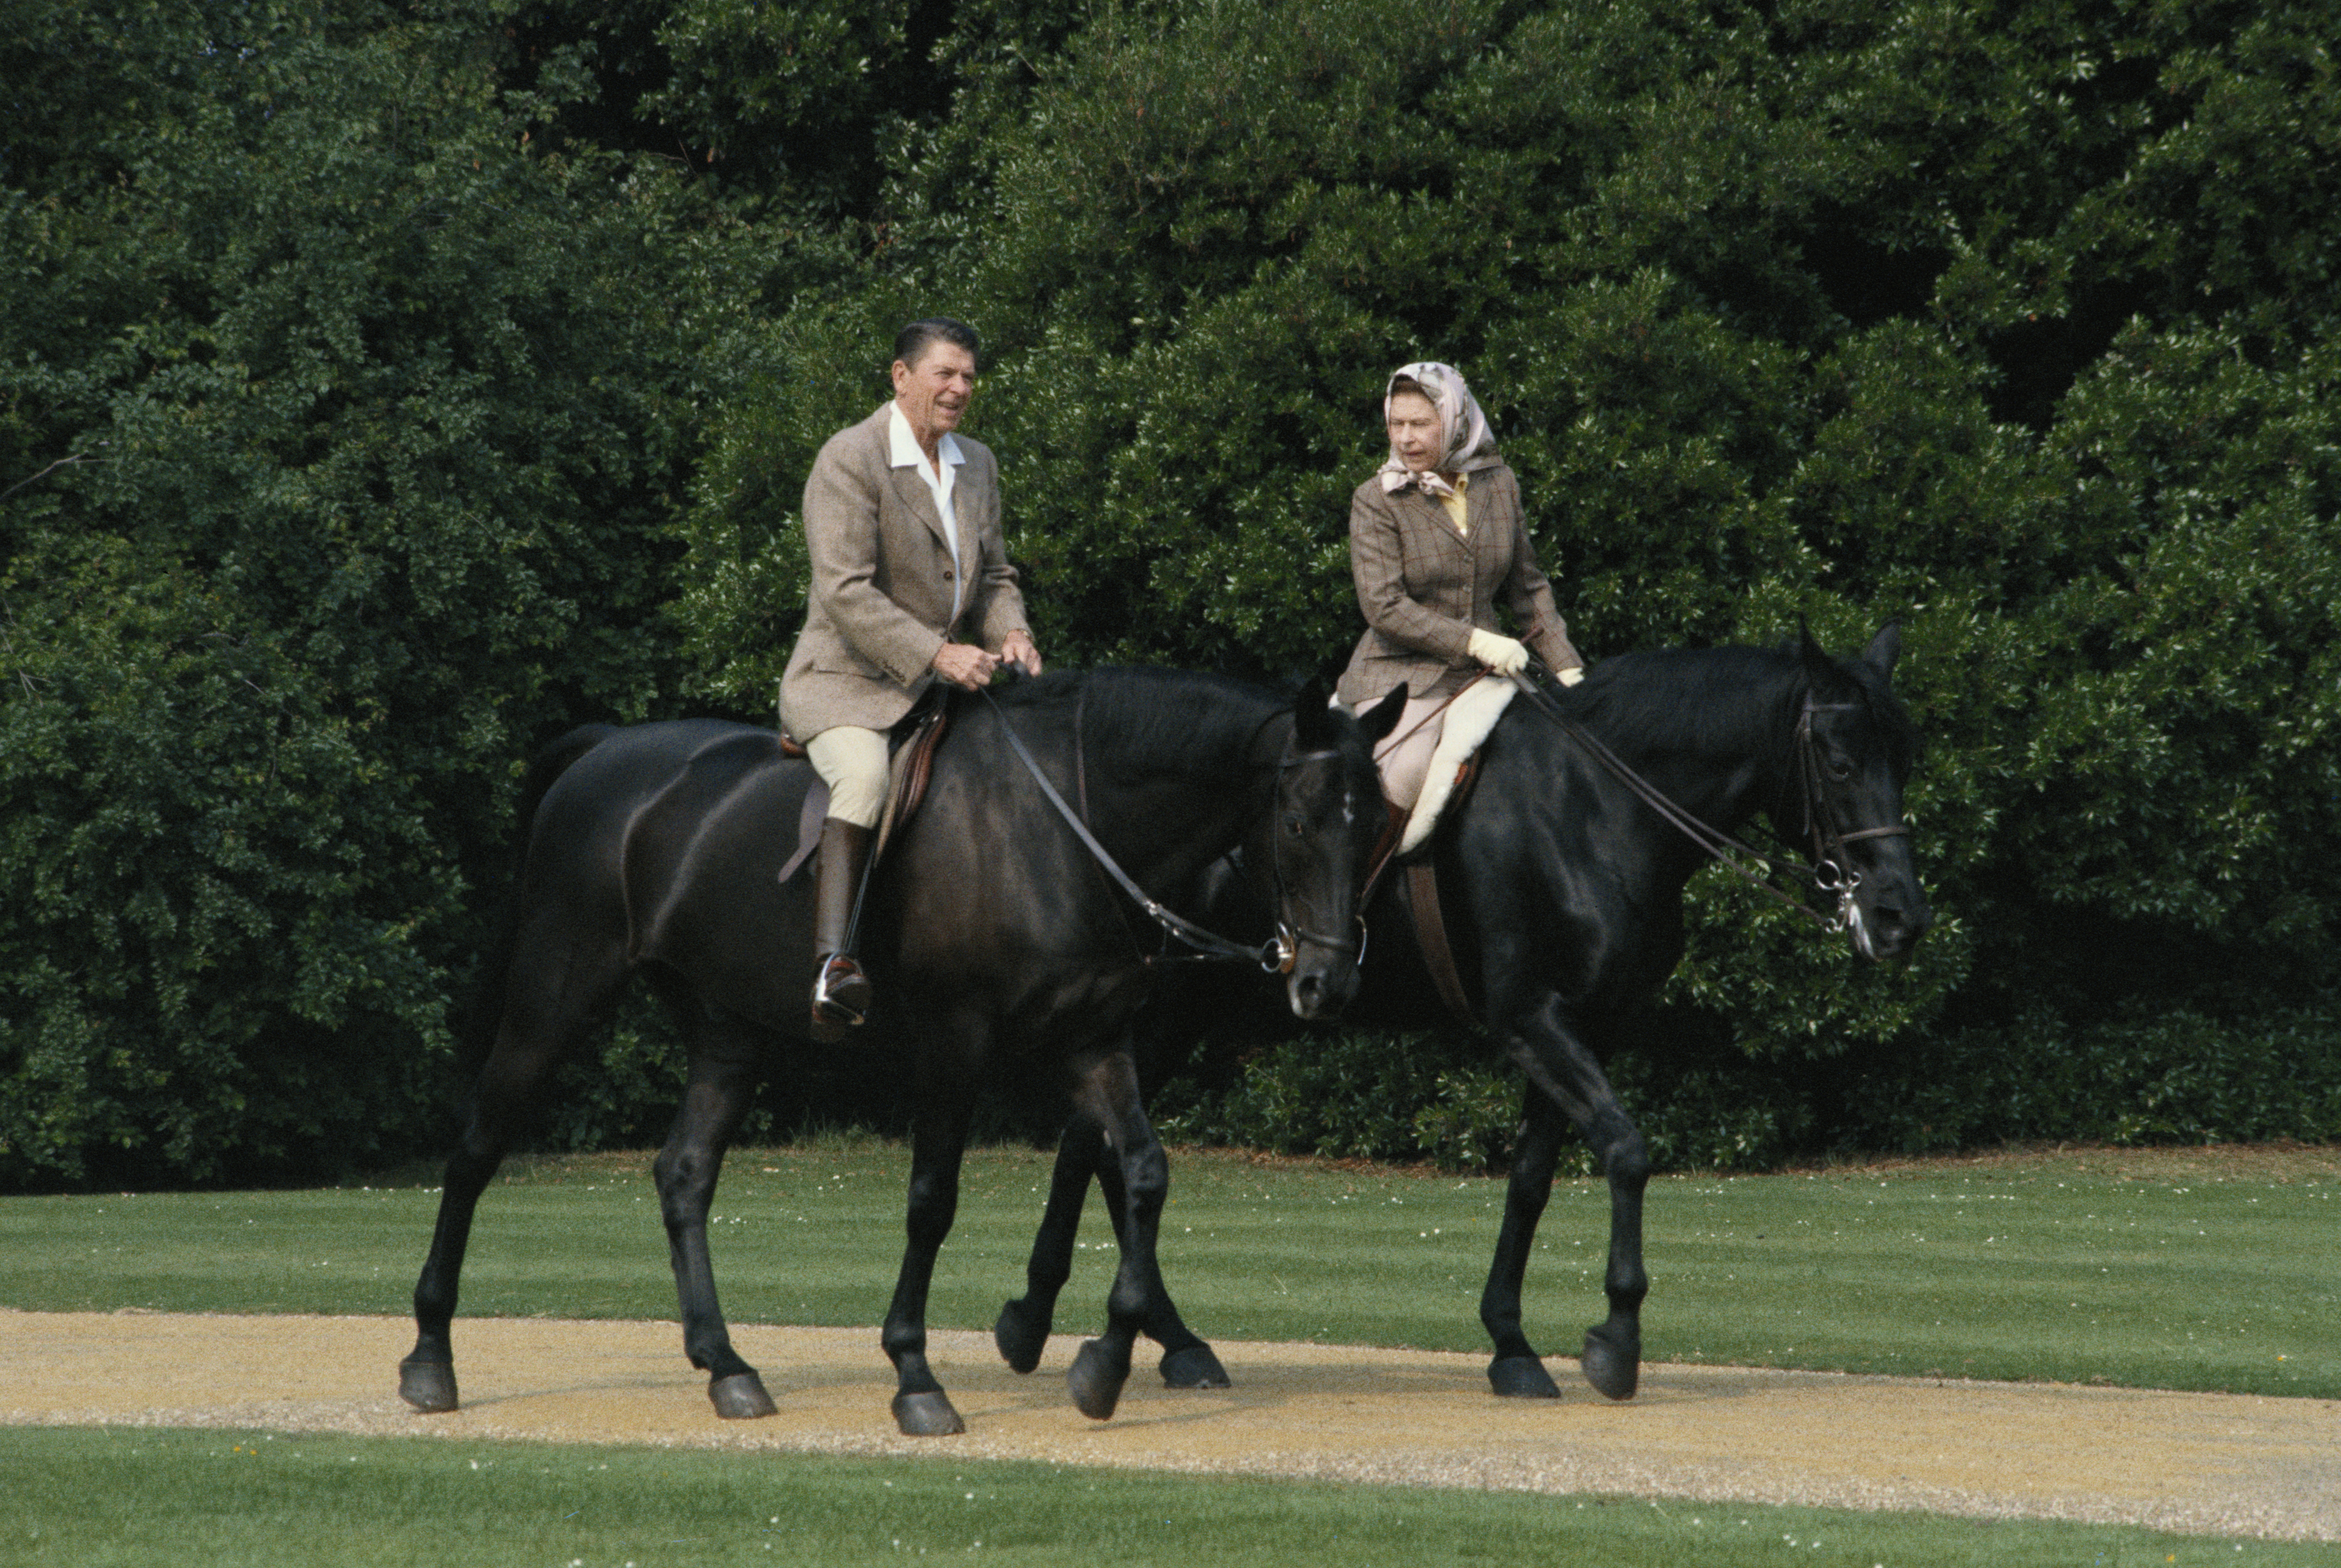 Queen Elizabeth II riding in the grounds of Windsor Castle with US President Ronald Reagan, during his state visit to the UK, 8th June 1982.